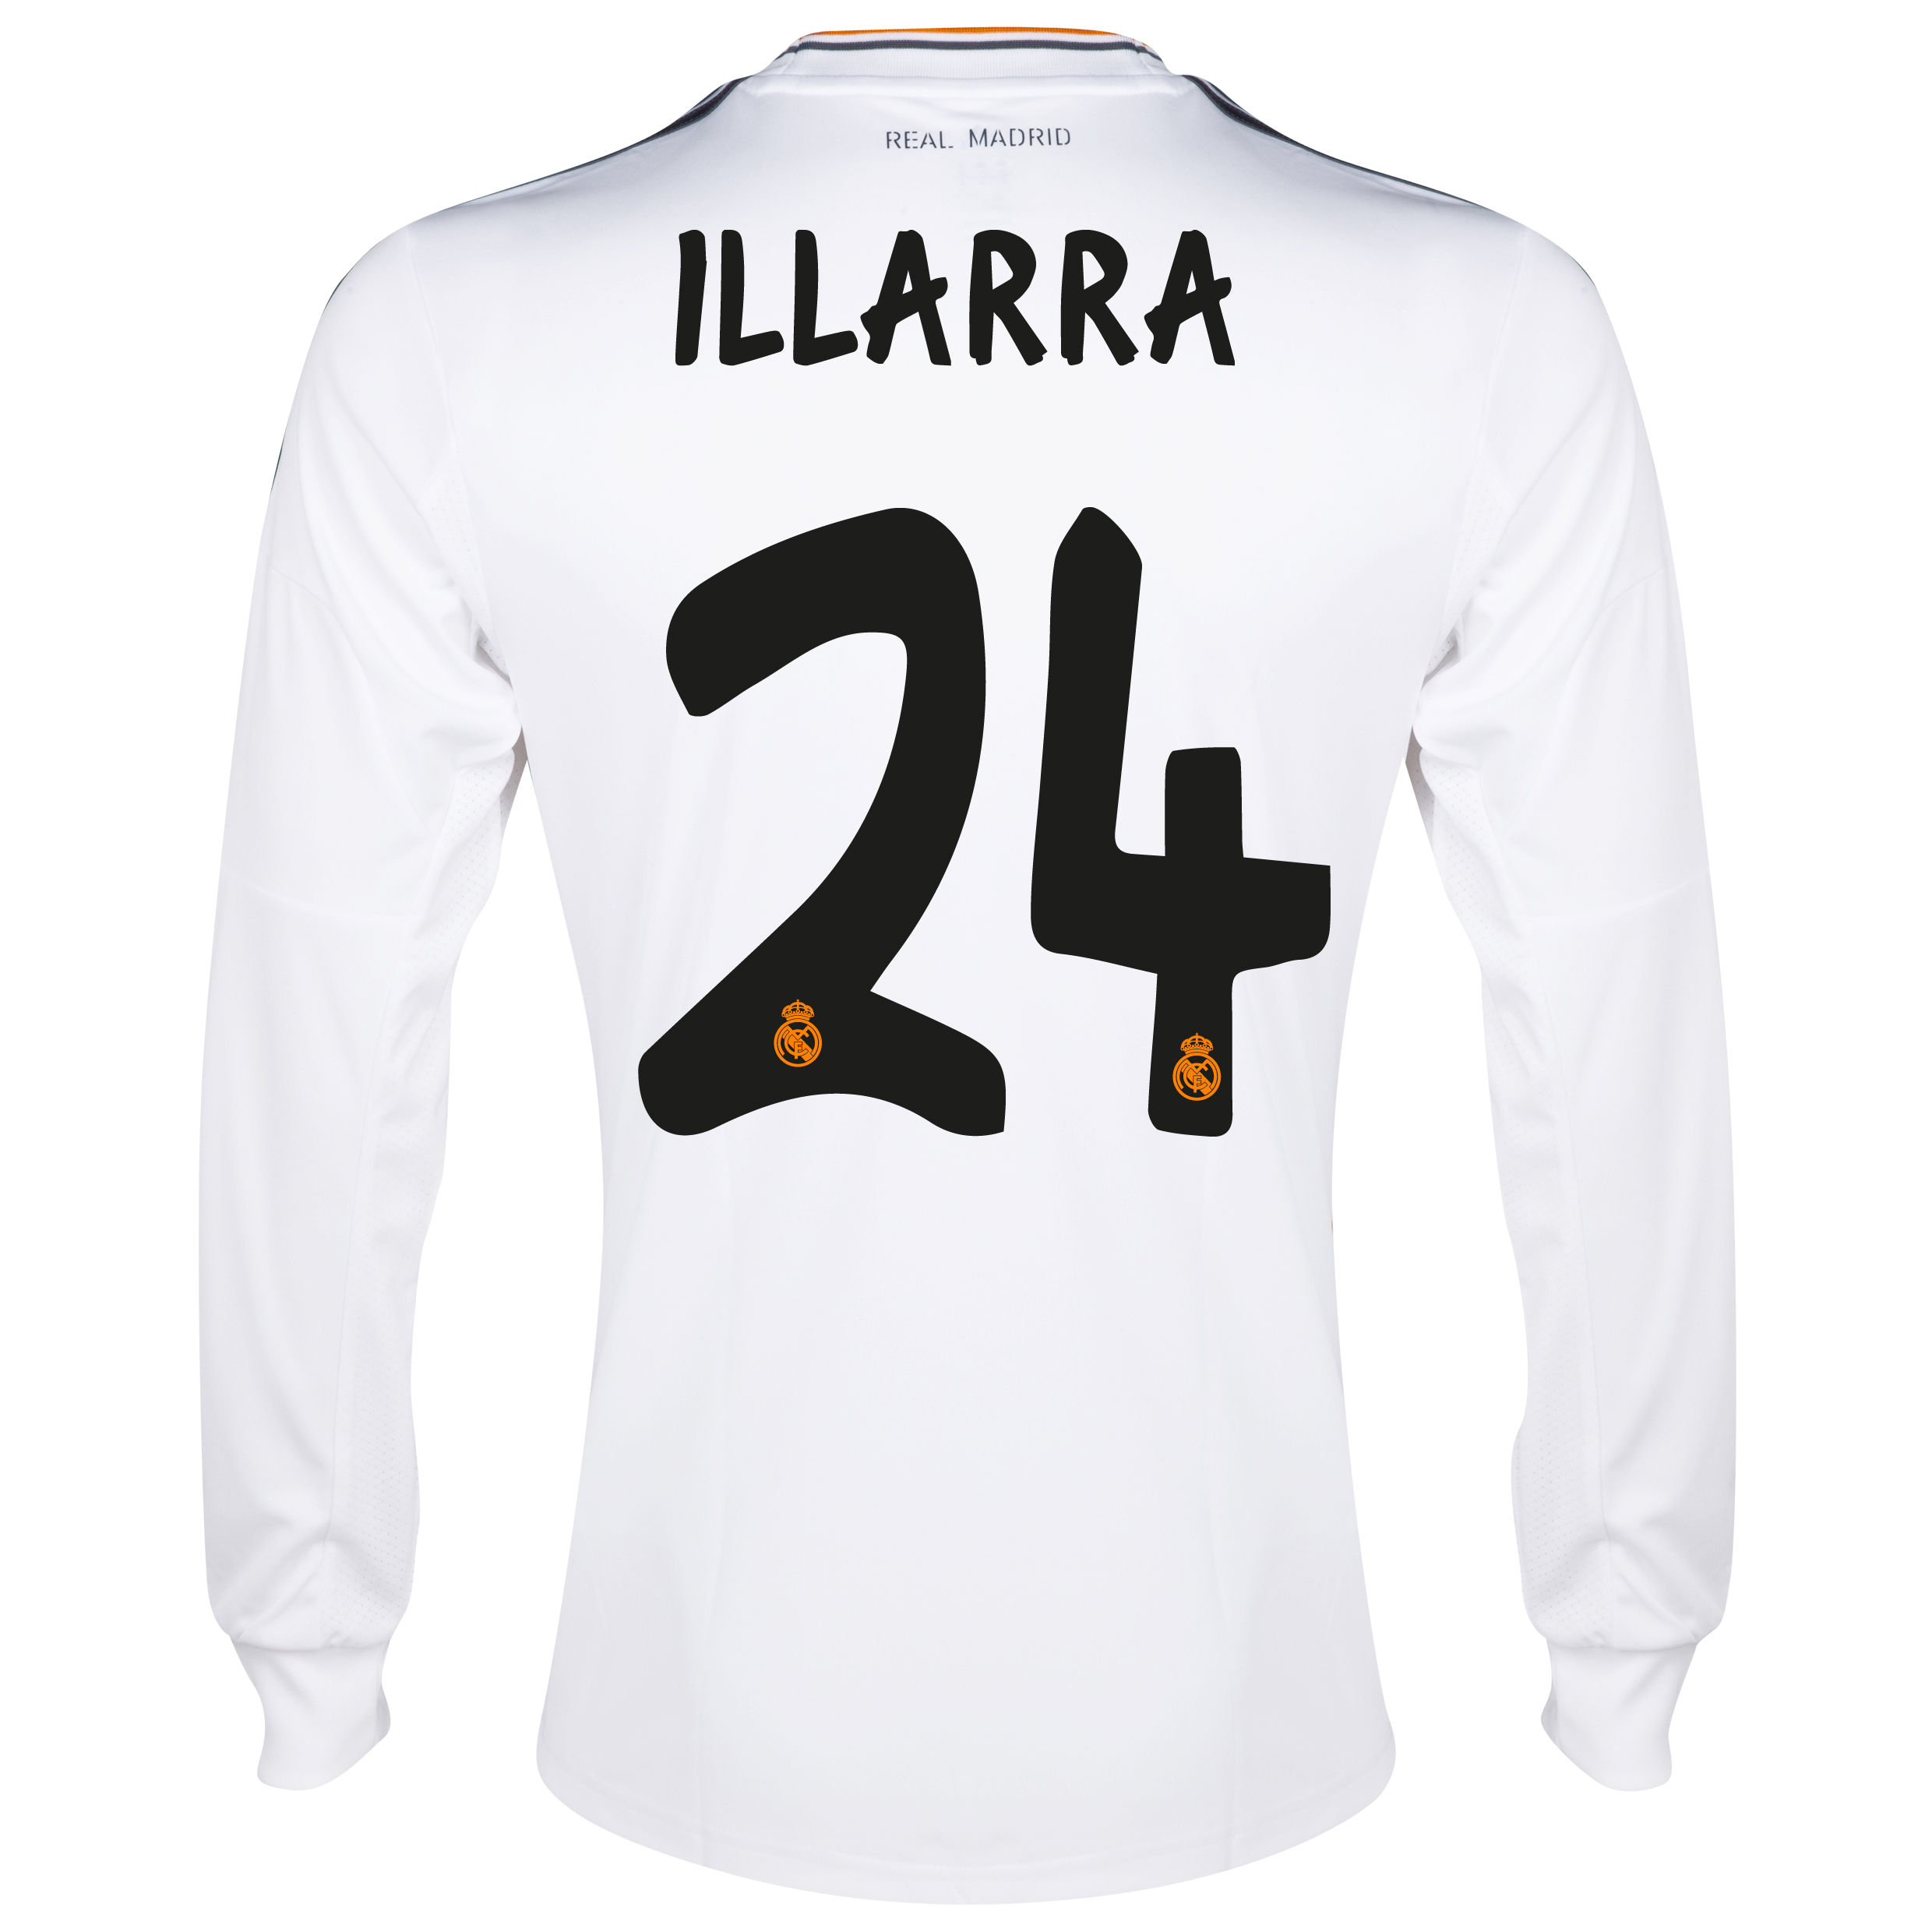 Camiseta local Real Madrid 2013/14 con impresión Illara 24 - Manga larga